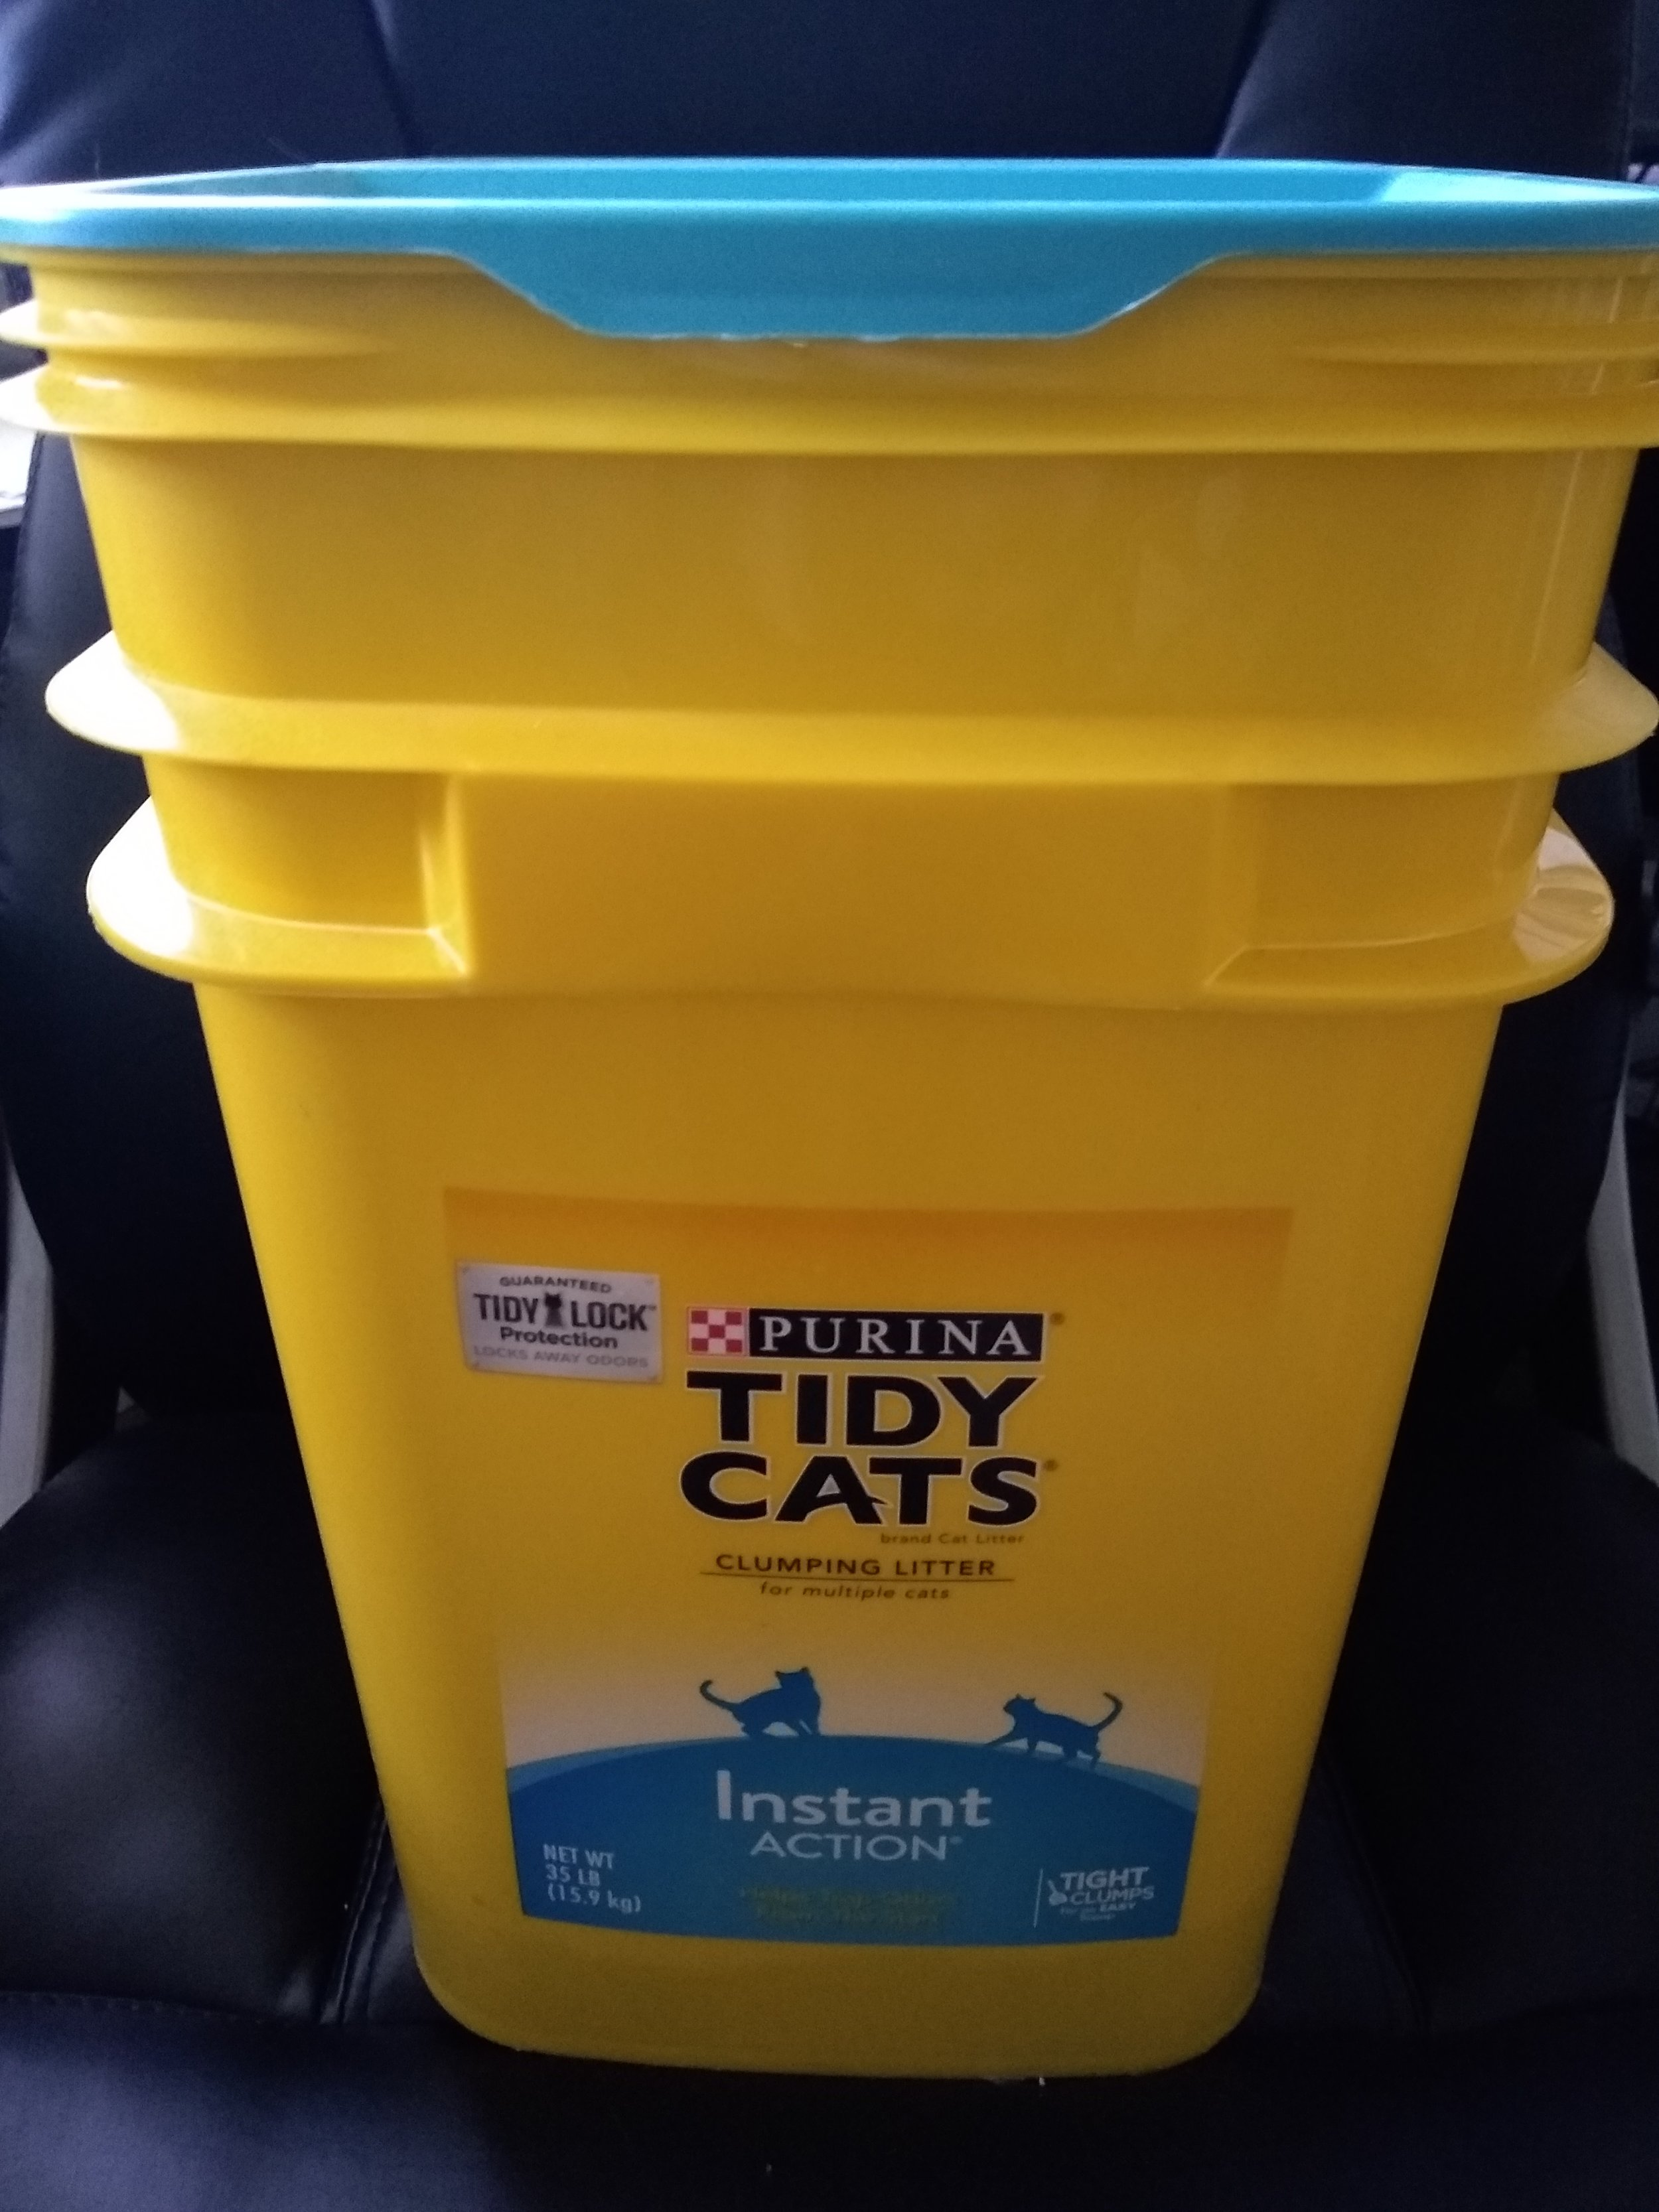 tidy-cats-litter.jpg